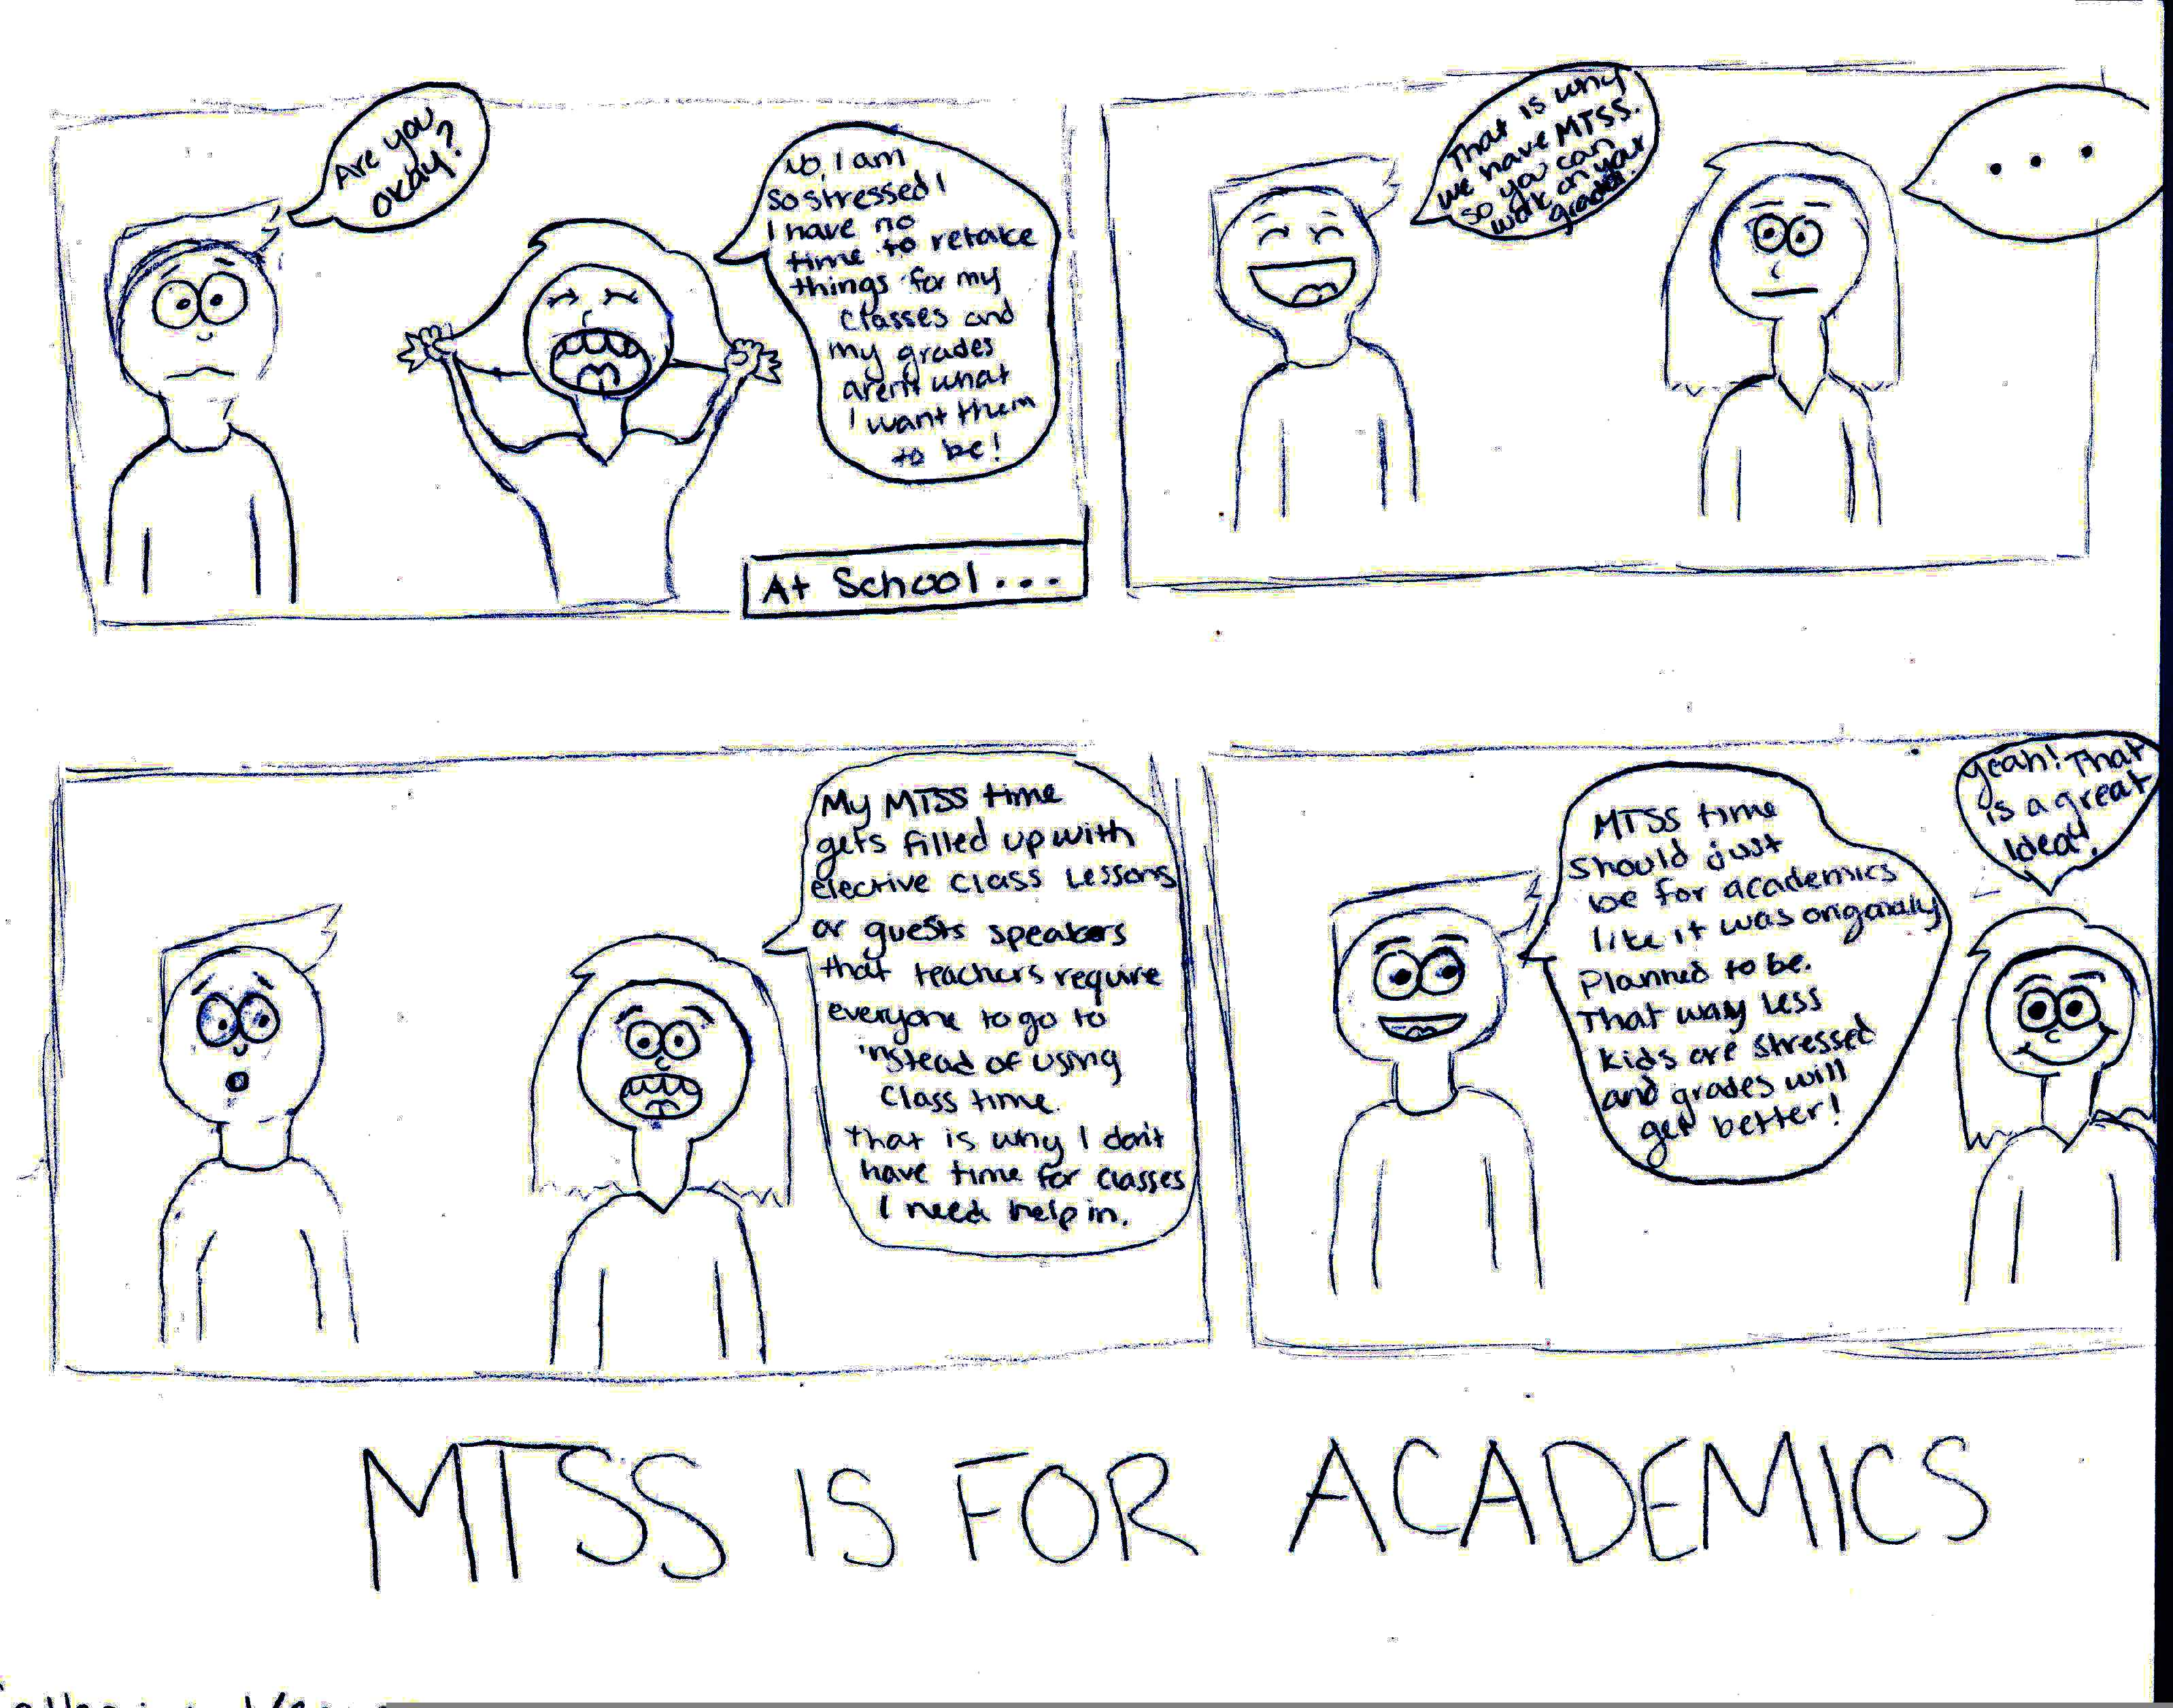 MTSS: Academics Should Be a Priority